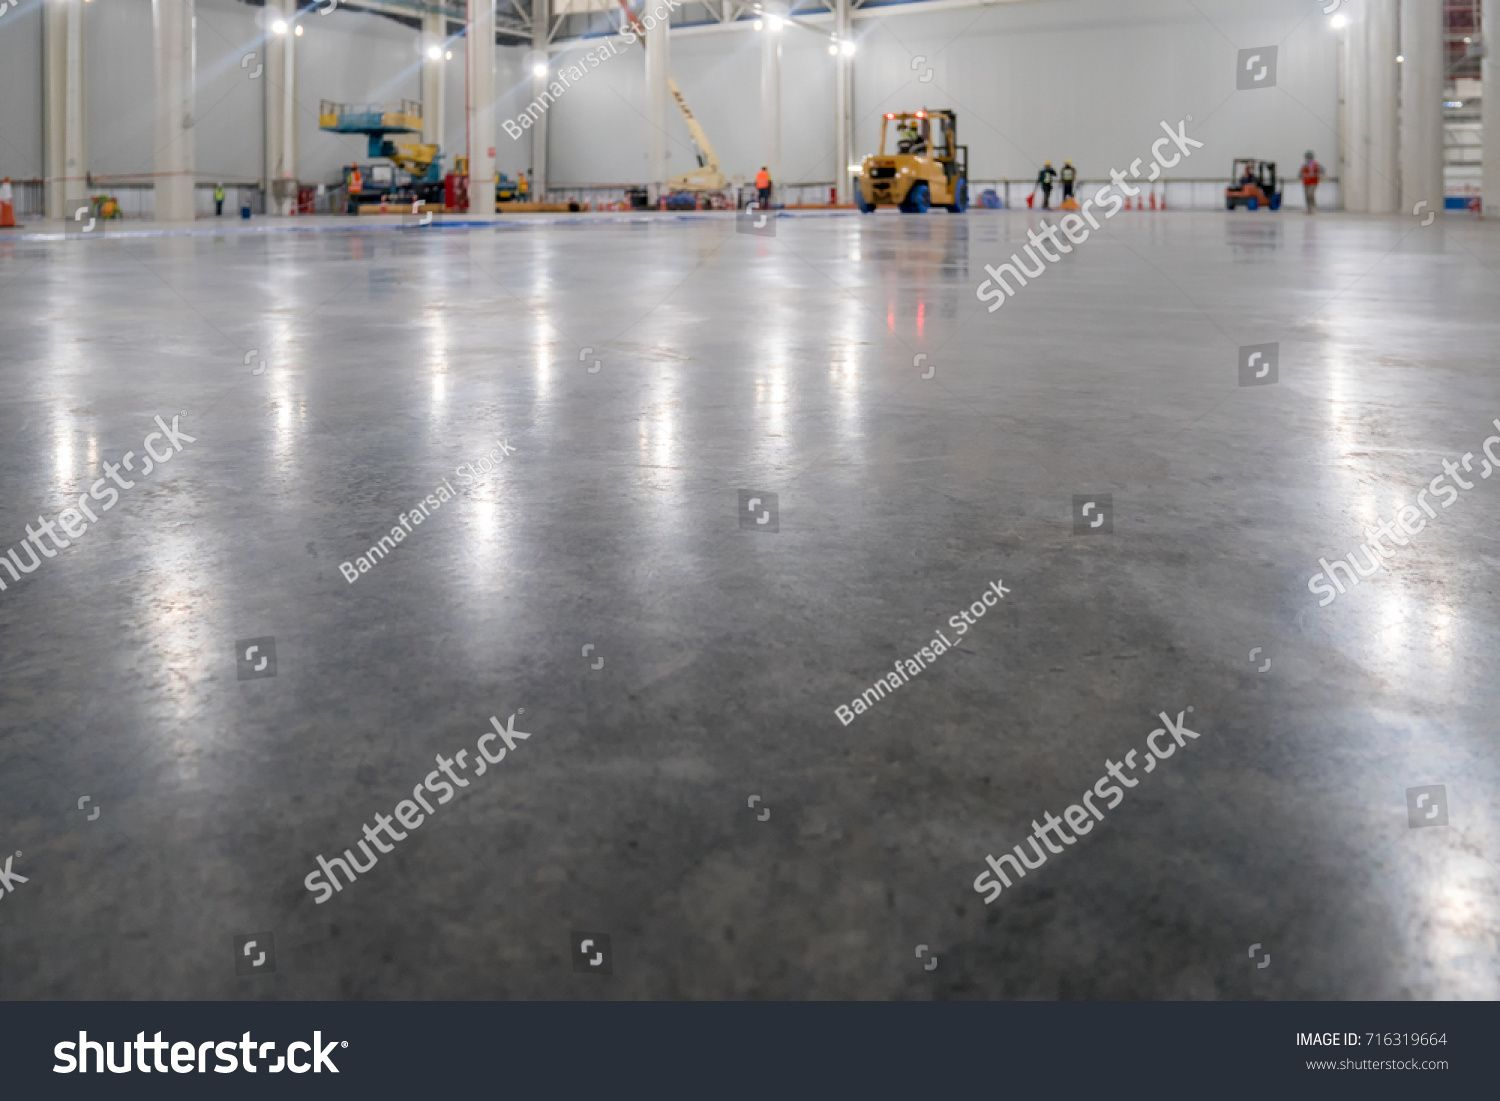 Epoxy Floor In Warehouse Factory Japan Sponsored Ad Floor Epoxy Warehouse Japan Epoxy Floor Interior Design Process Room Packages